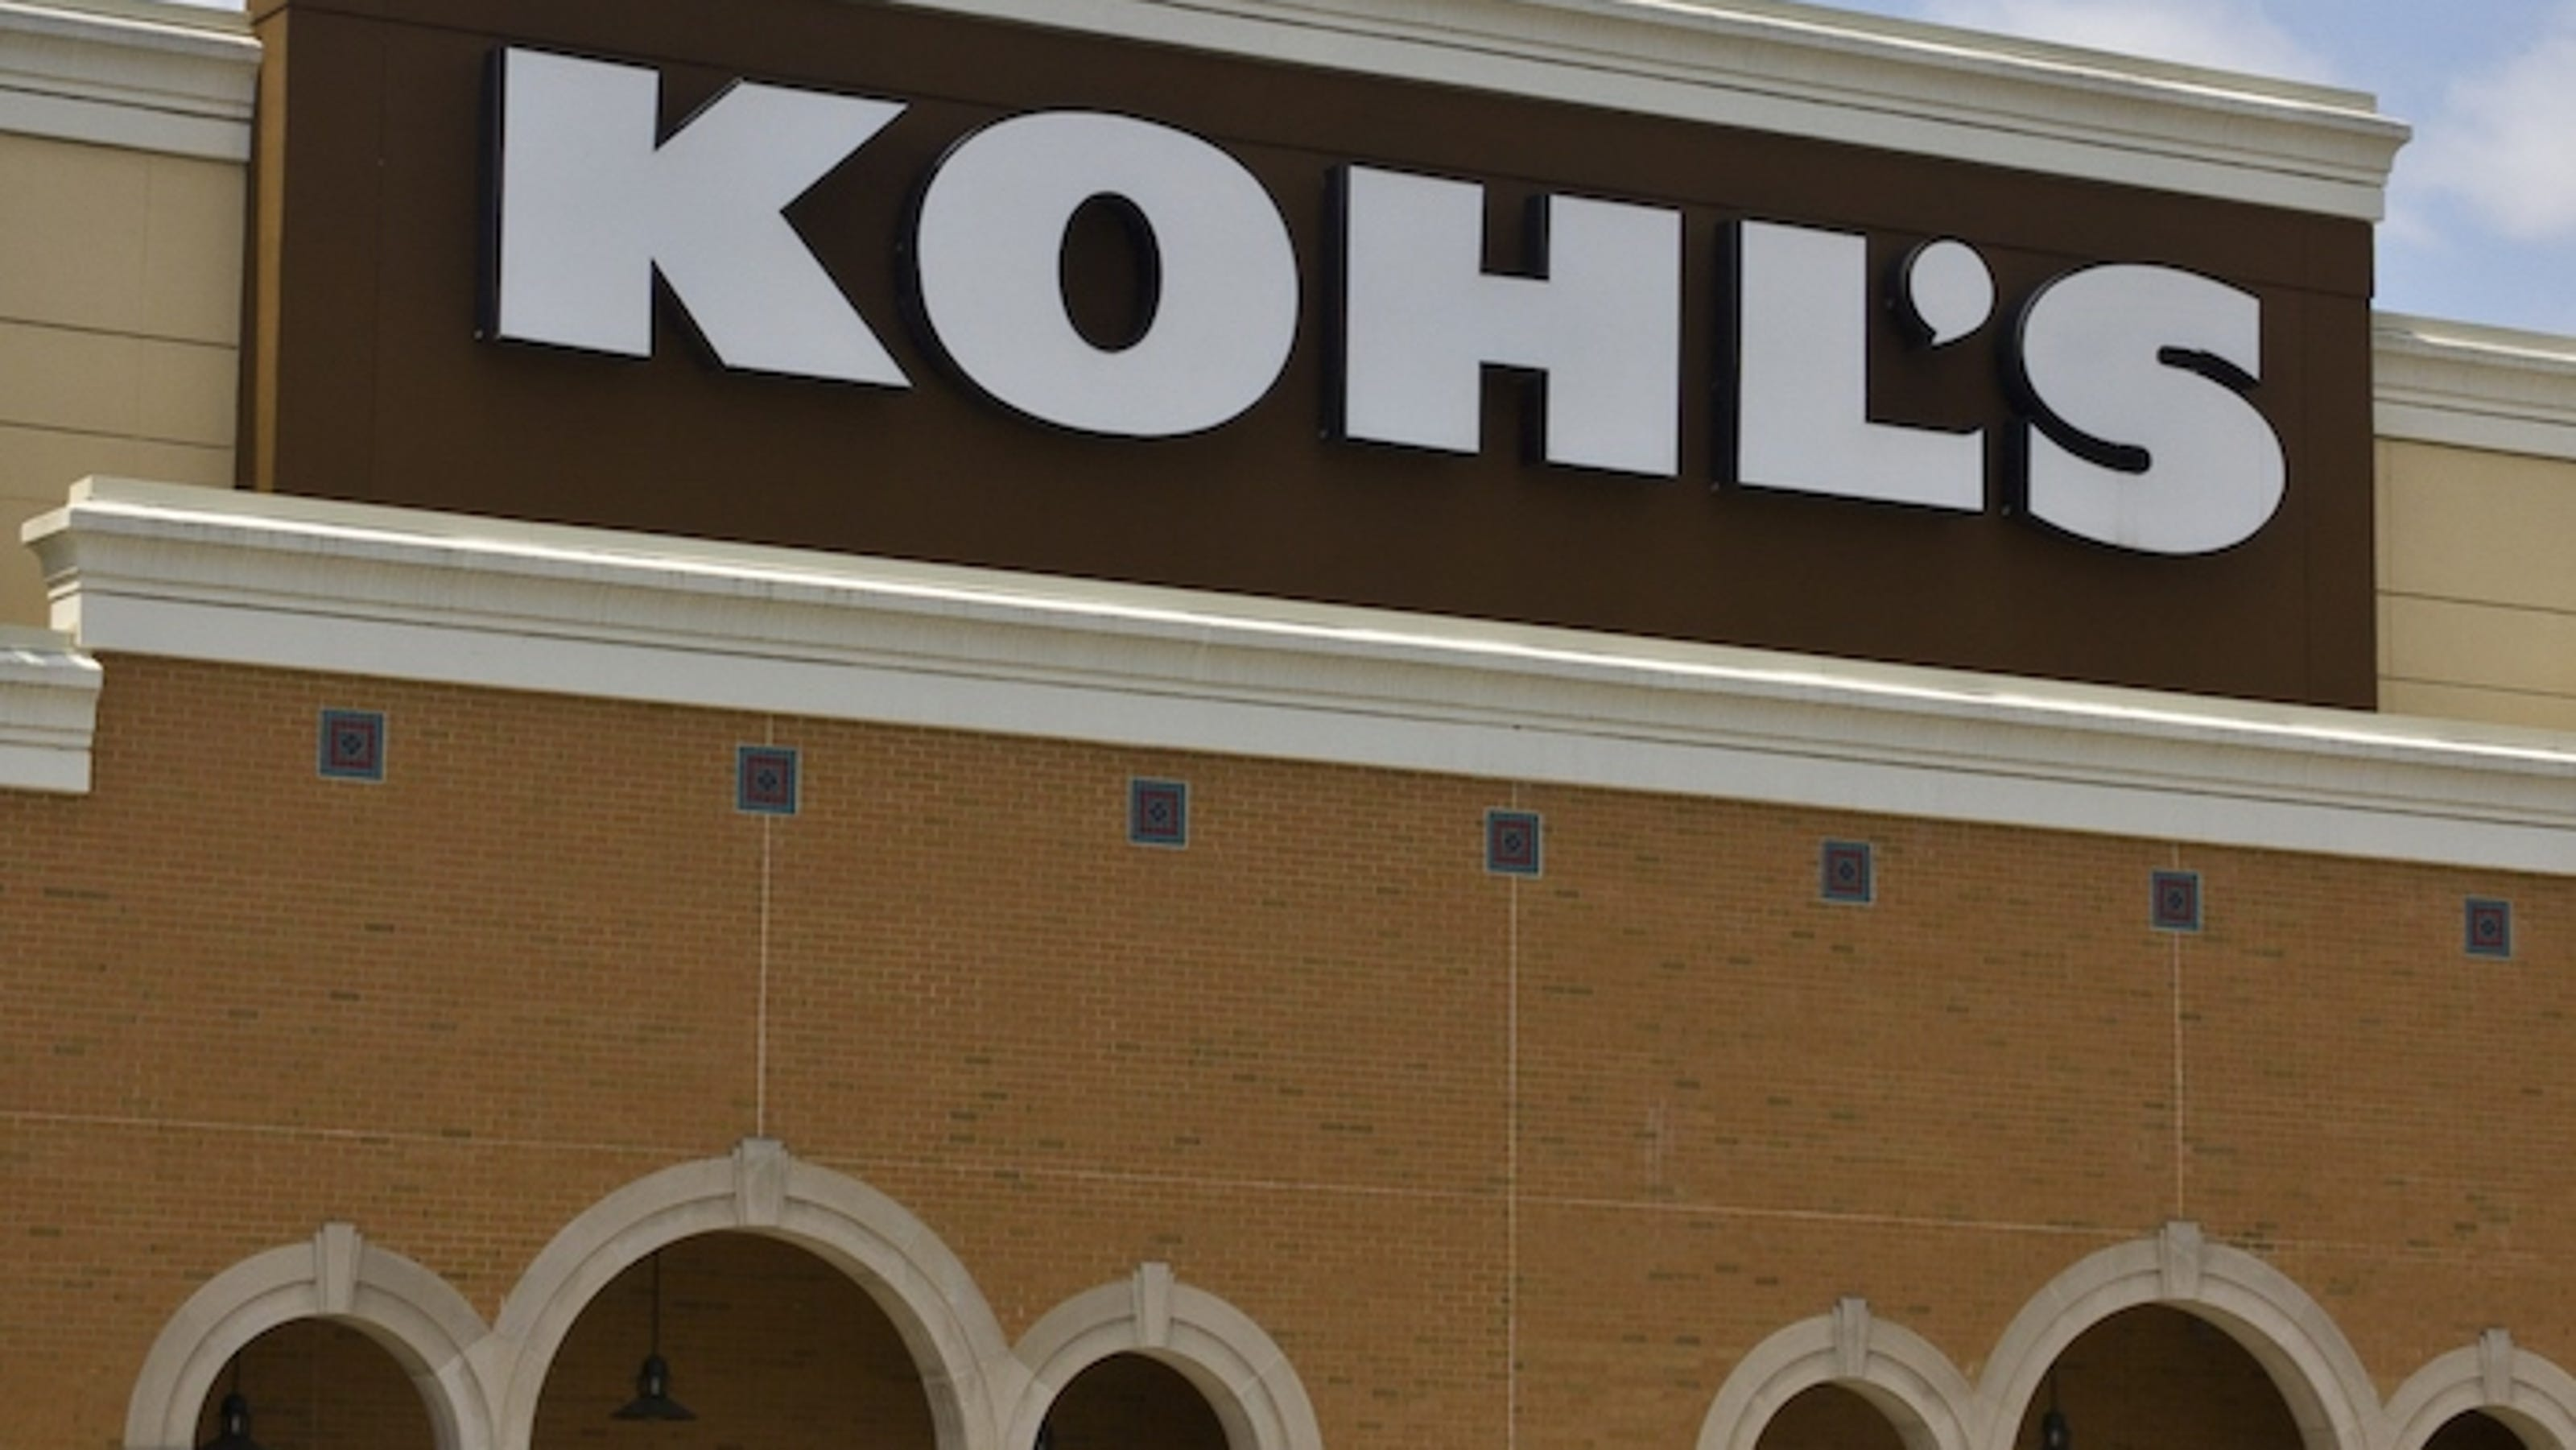 kohls corporation Kohl's corp owns and operates family-oriented department stores it offers exclusive brand apparel, shoes, accessories and home & beauty products through its department stores.